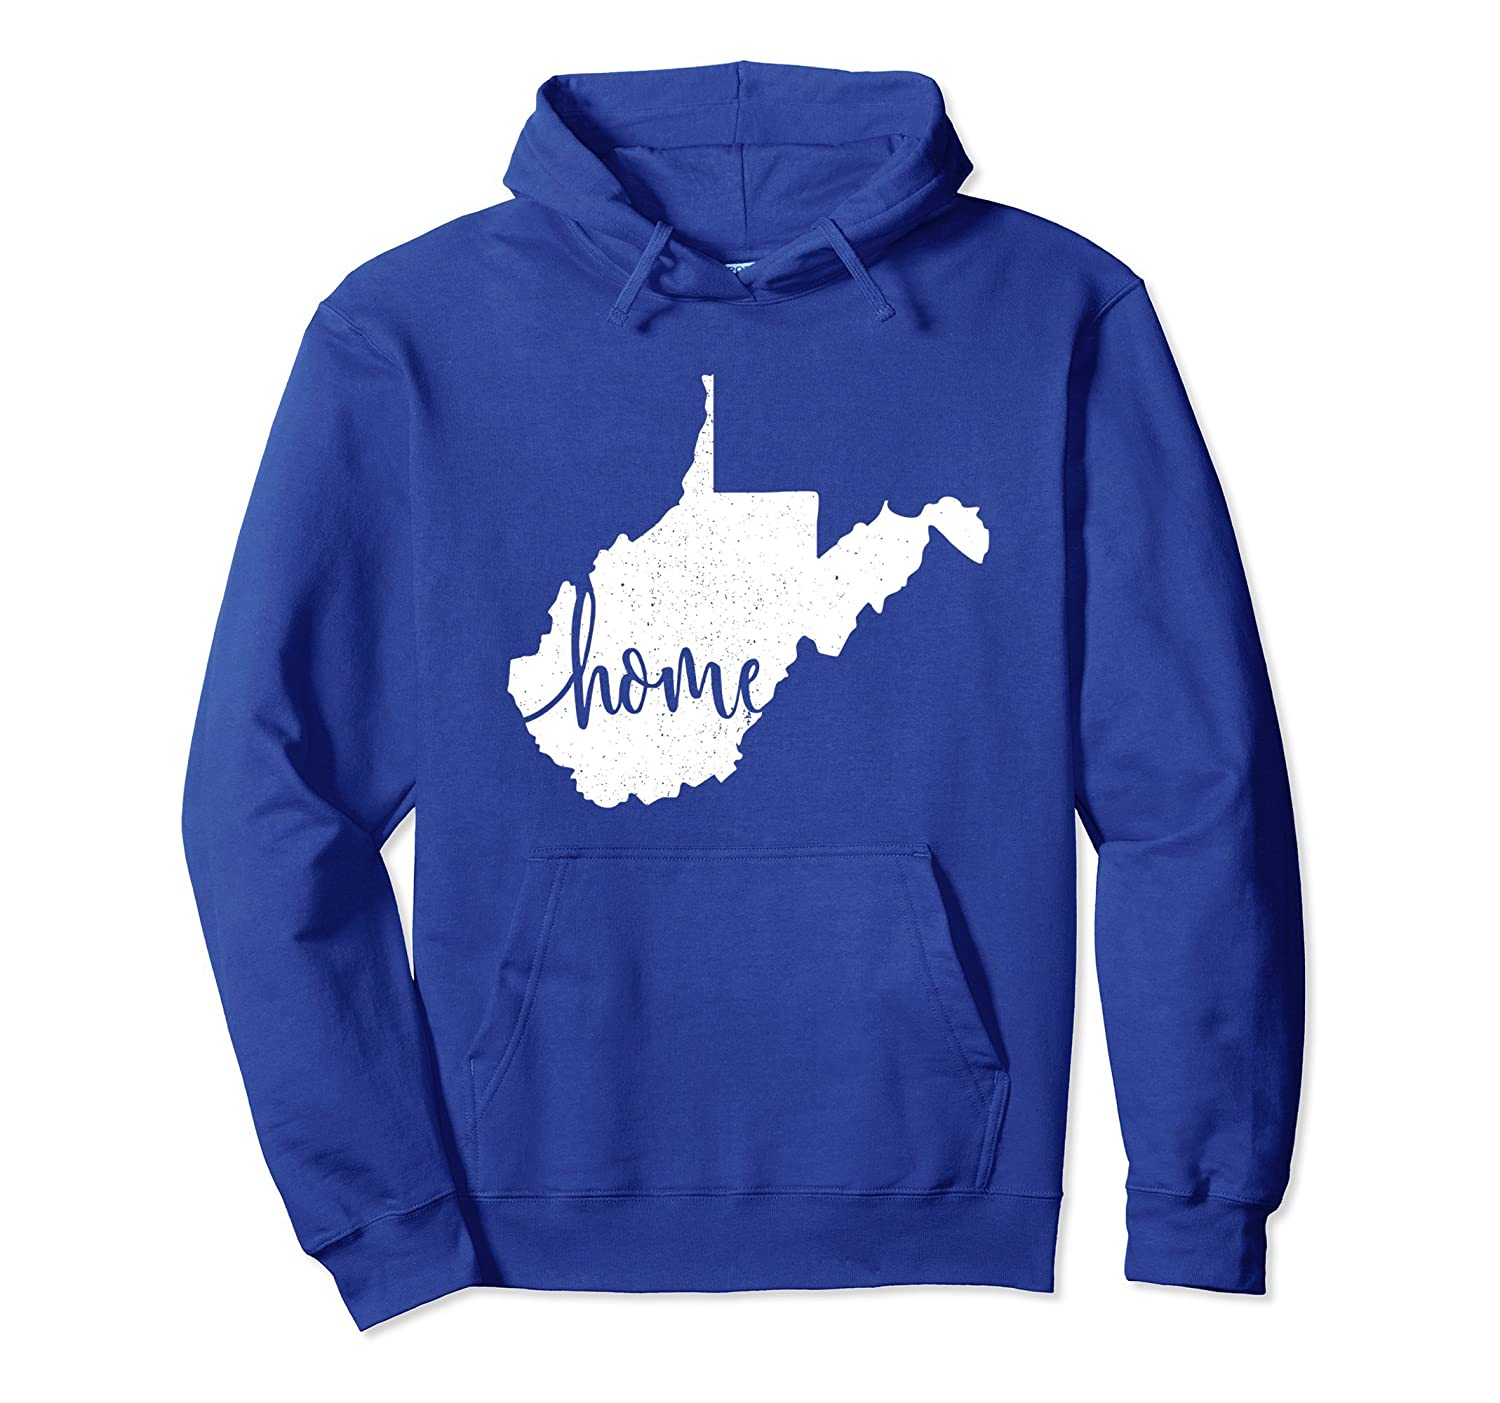 West Virginia Hoodie Sweatshirt. Home State Vintage Gift-ah my shirt one gift